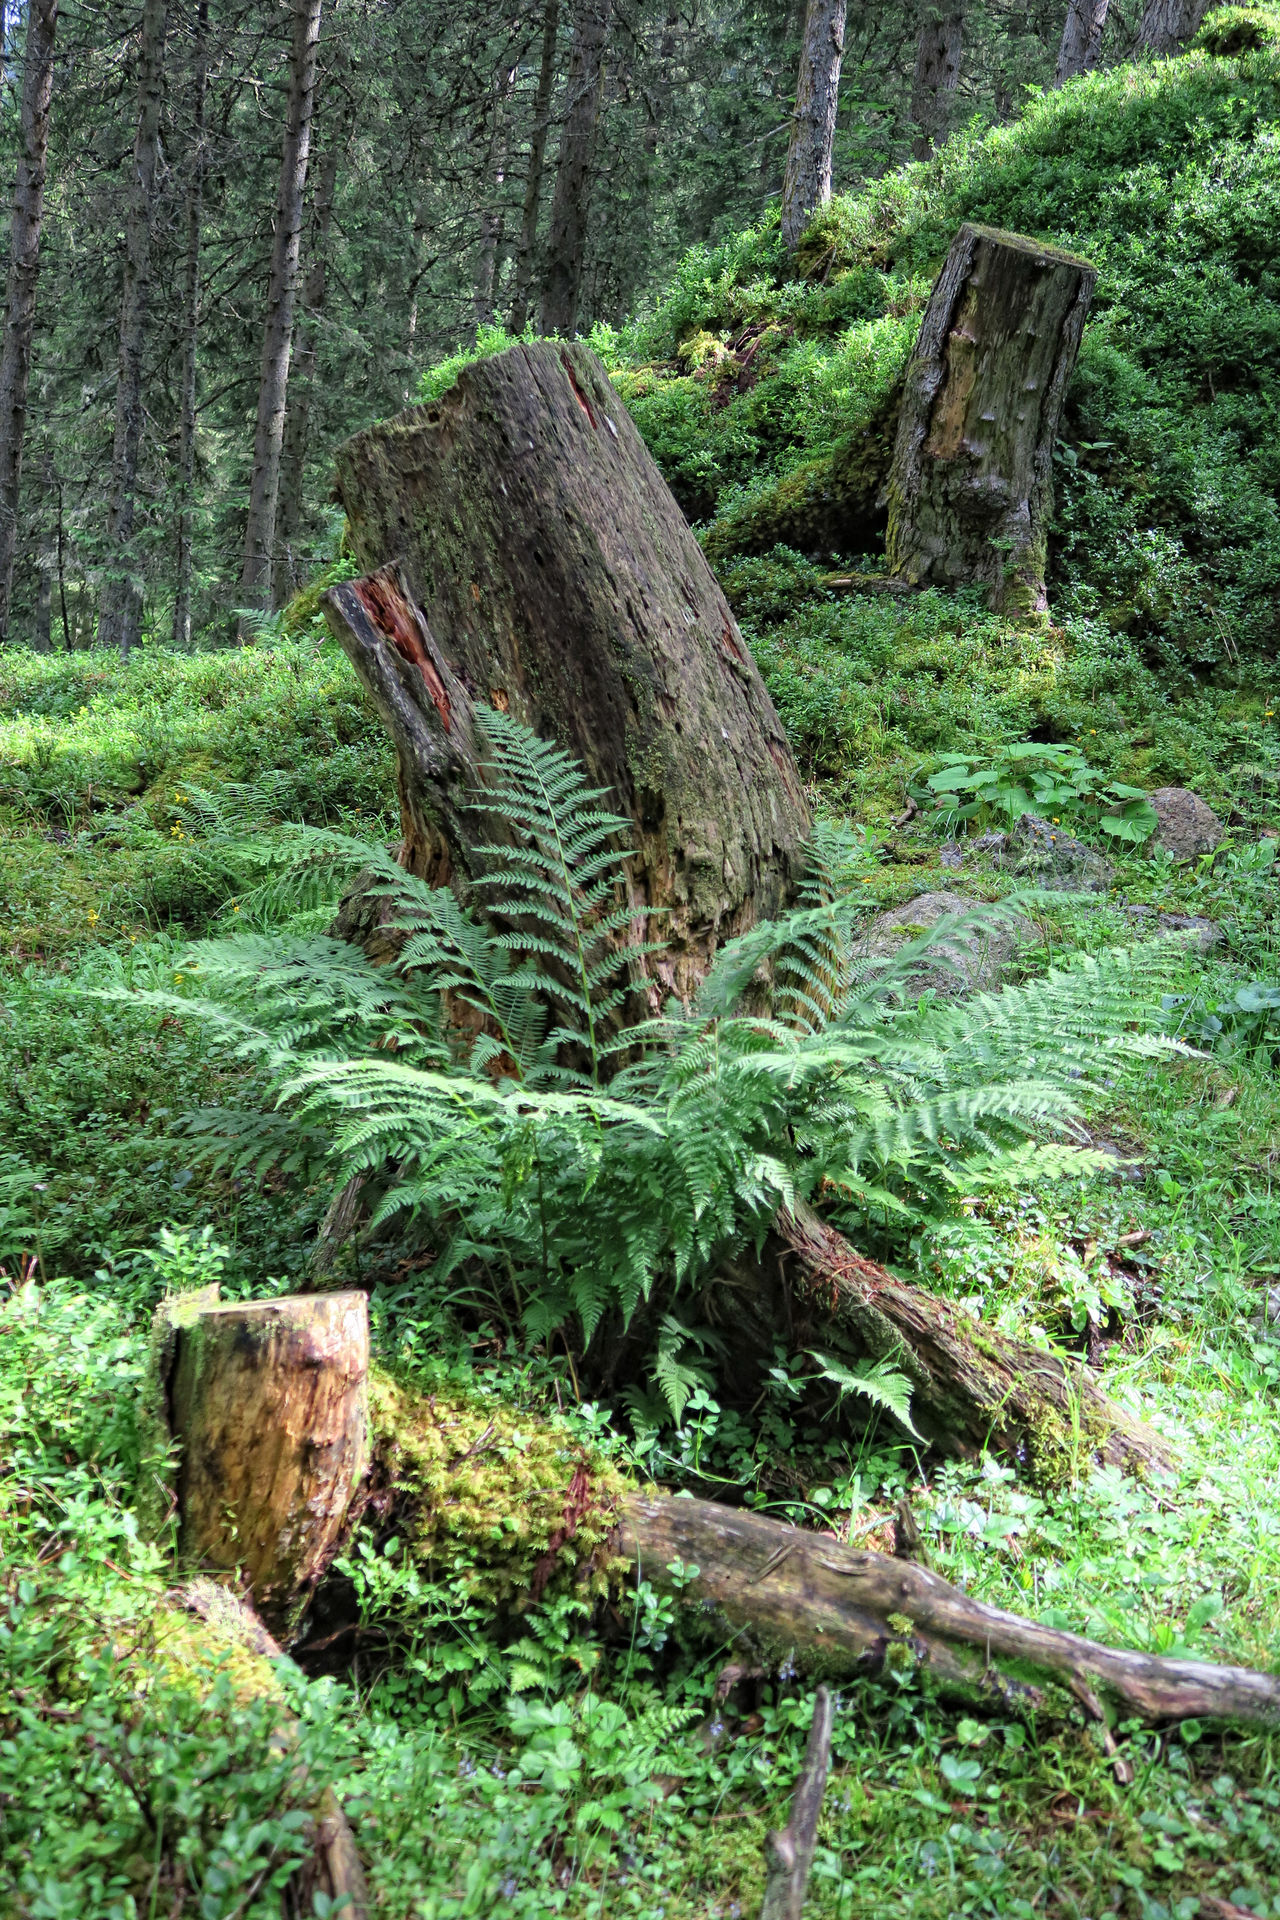 dead tree trunks in the european alps forest. Alps Alps Austria Day Deadwood  Deadwood Forrest Fern Forest Forest Photography Gerlos Growth Nature No People Outdoors Scenics Tranquil Scene Tranquility Tree Tree Trunk Wood - Material